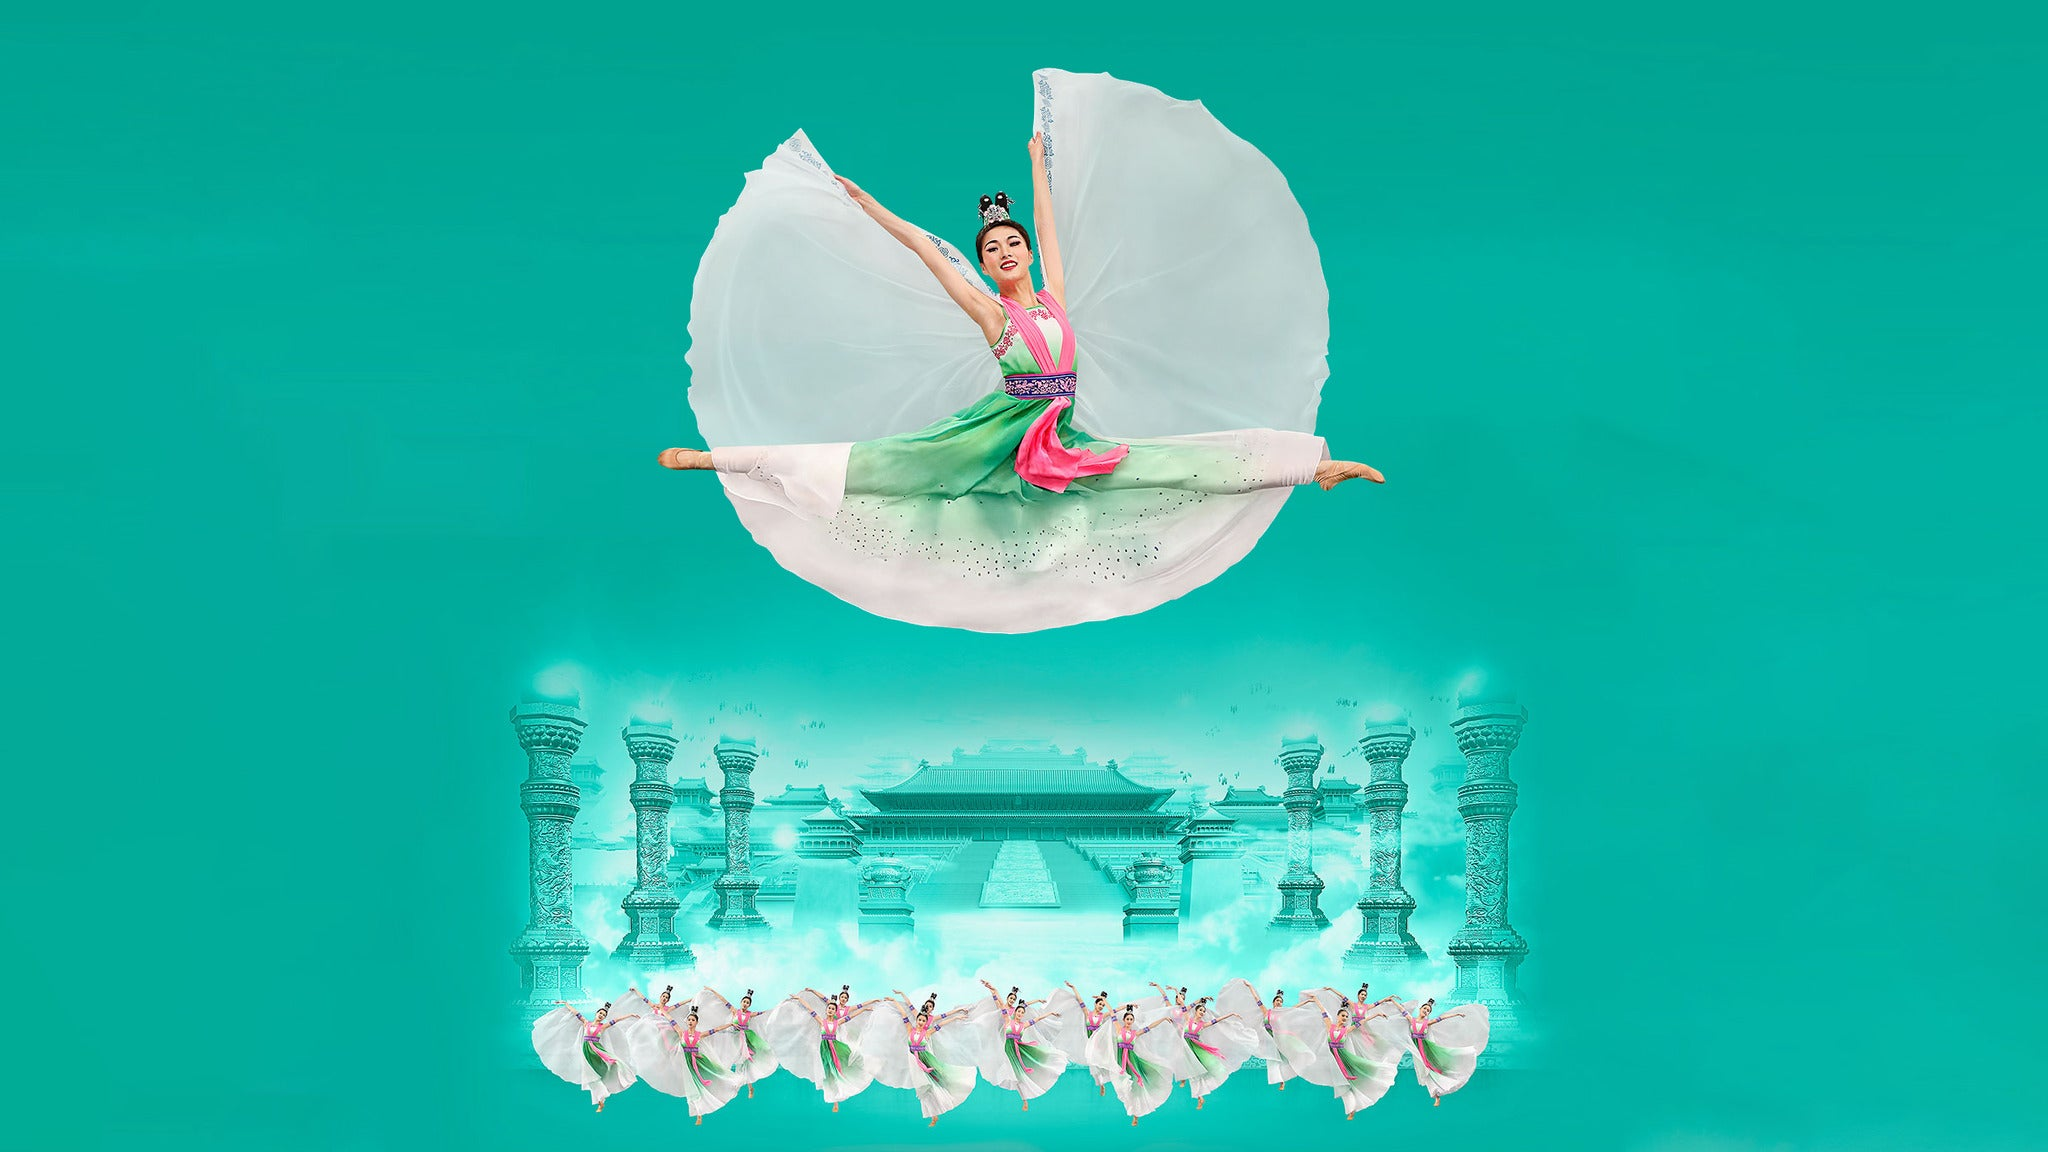 Shen Yun Performing Arts at Ordway Theatre